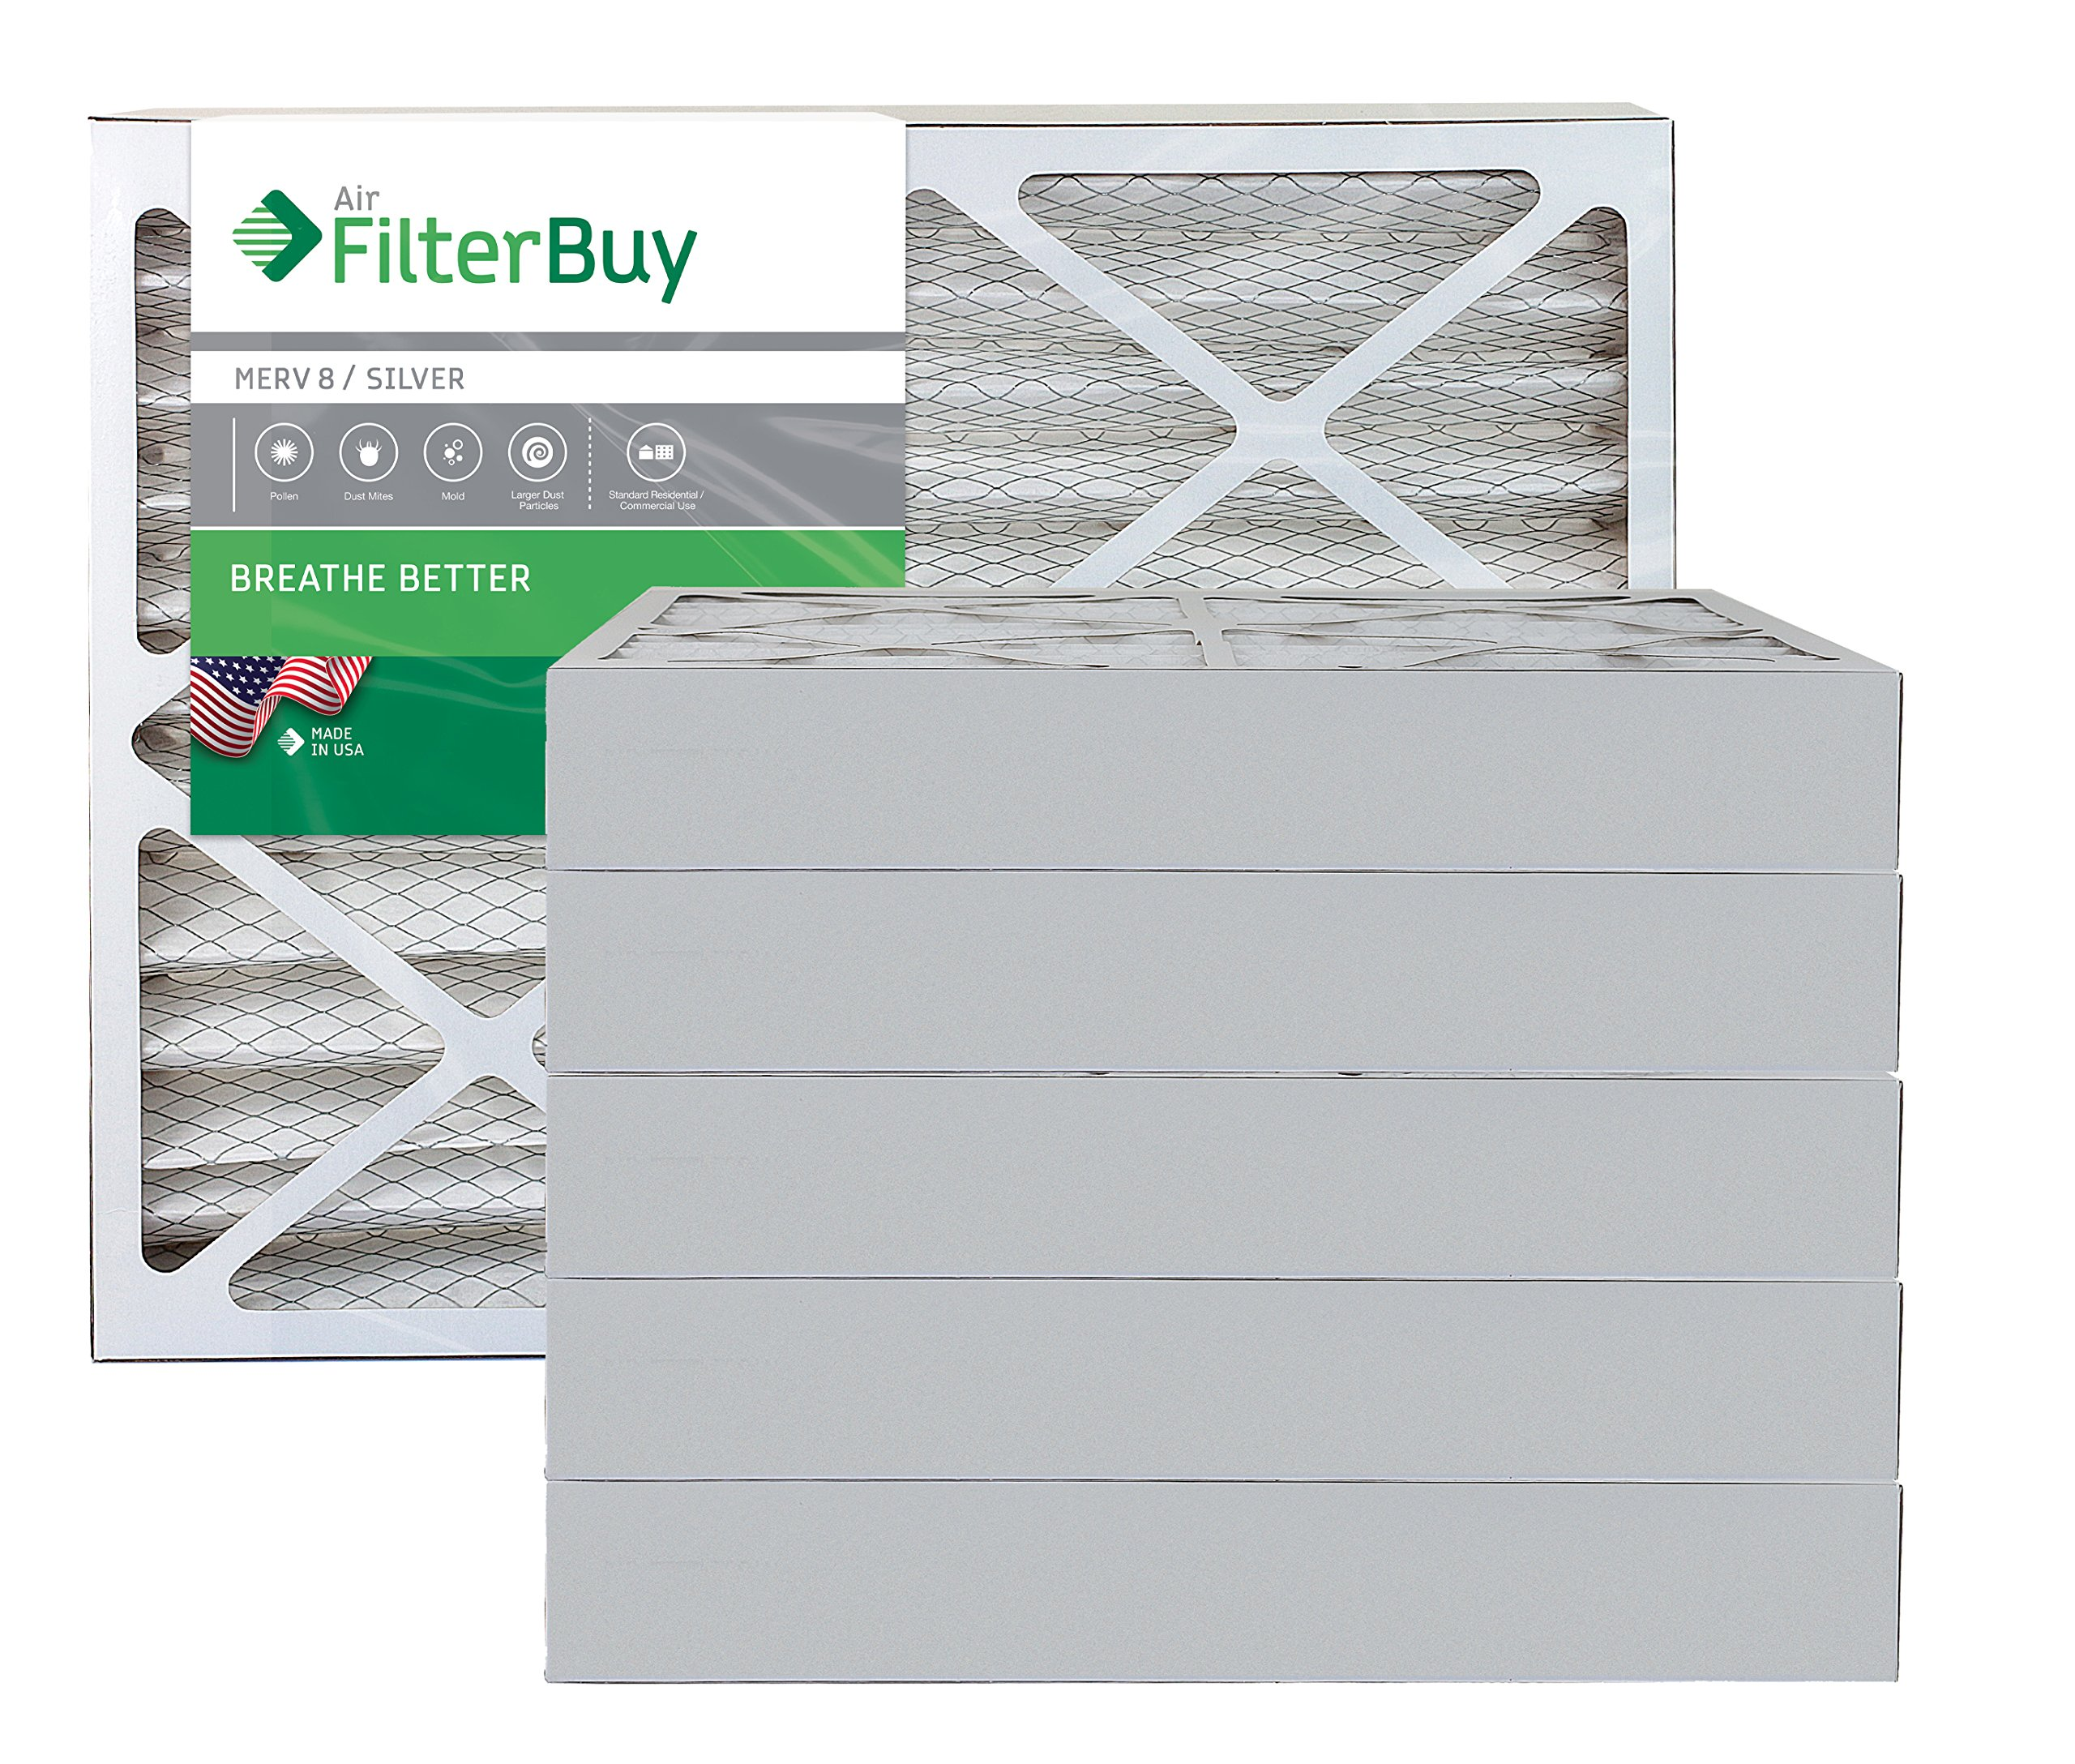 AFB Silver MERV 8 20x23x4 Pleated AC Furnace Air Filter. Pack of 6 Filters. 100% produced in the USA. by FilterBuy